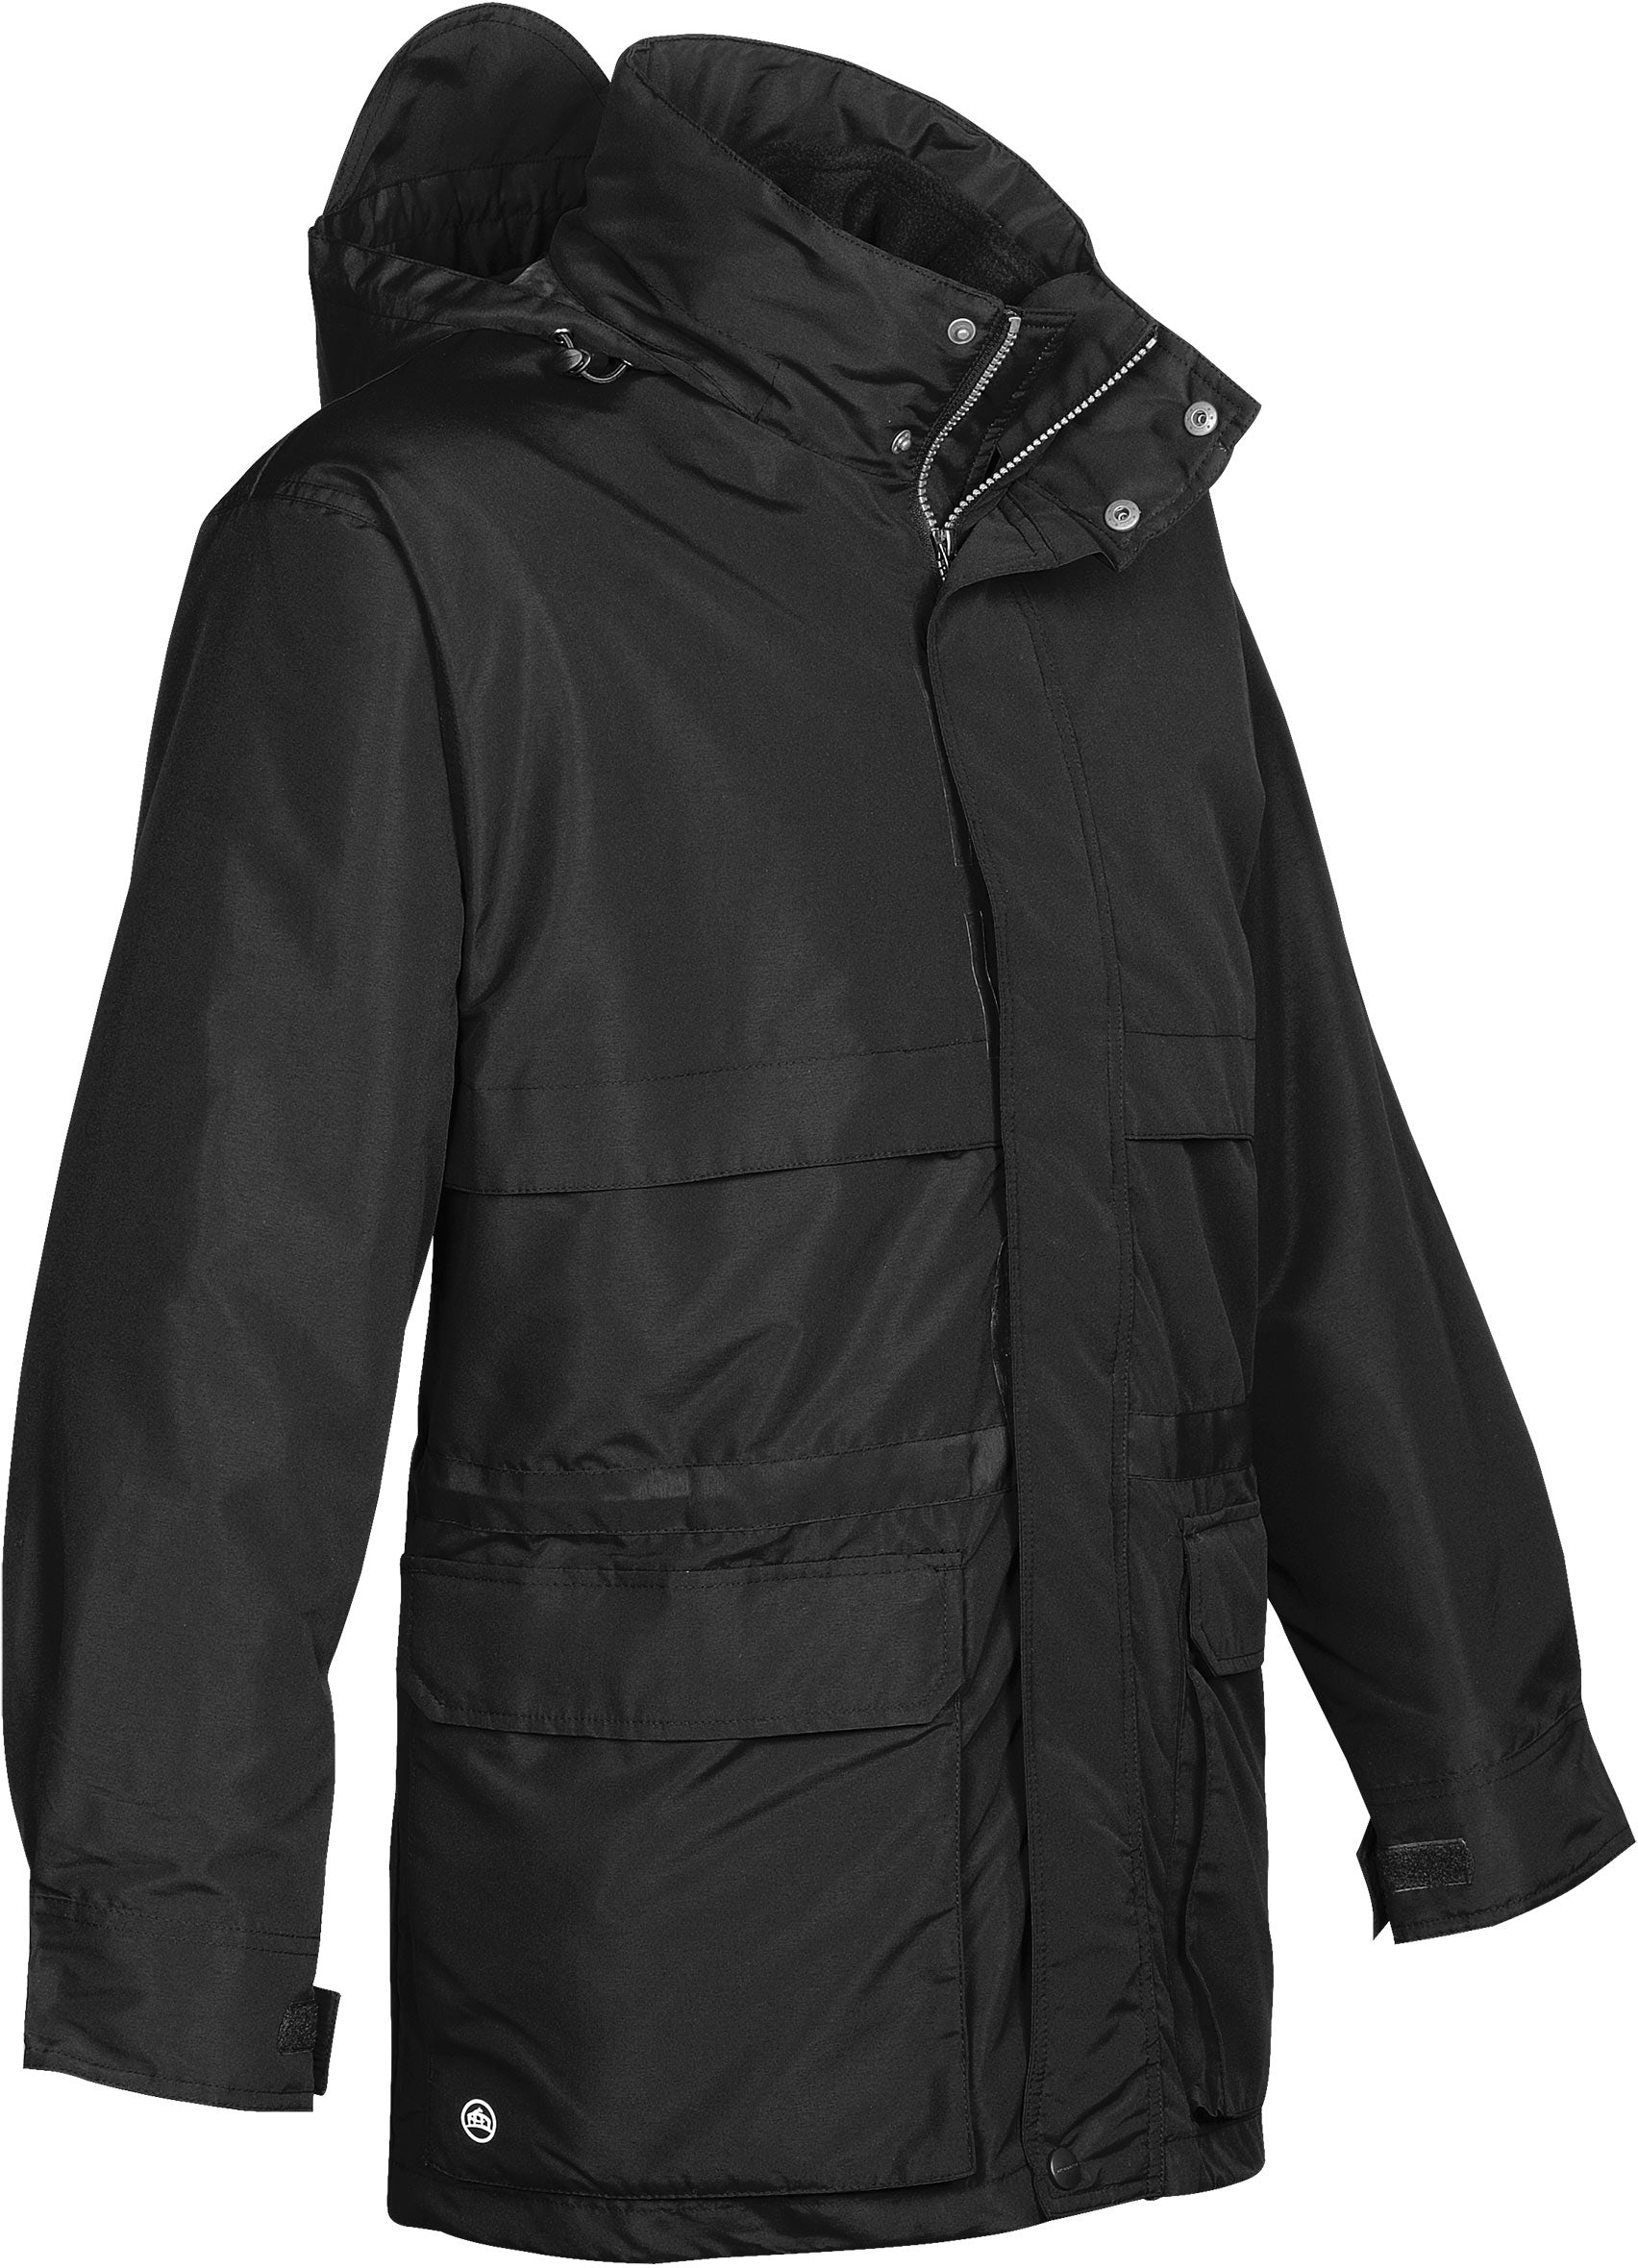 STORMTECH YOUTH EXPLORER 3-IN-1 SYSTEM PARKA